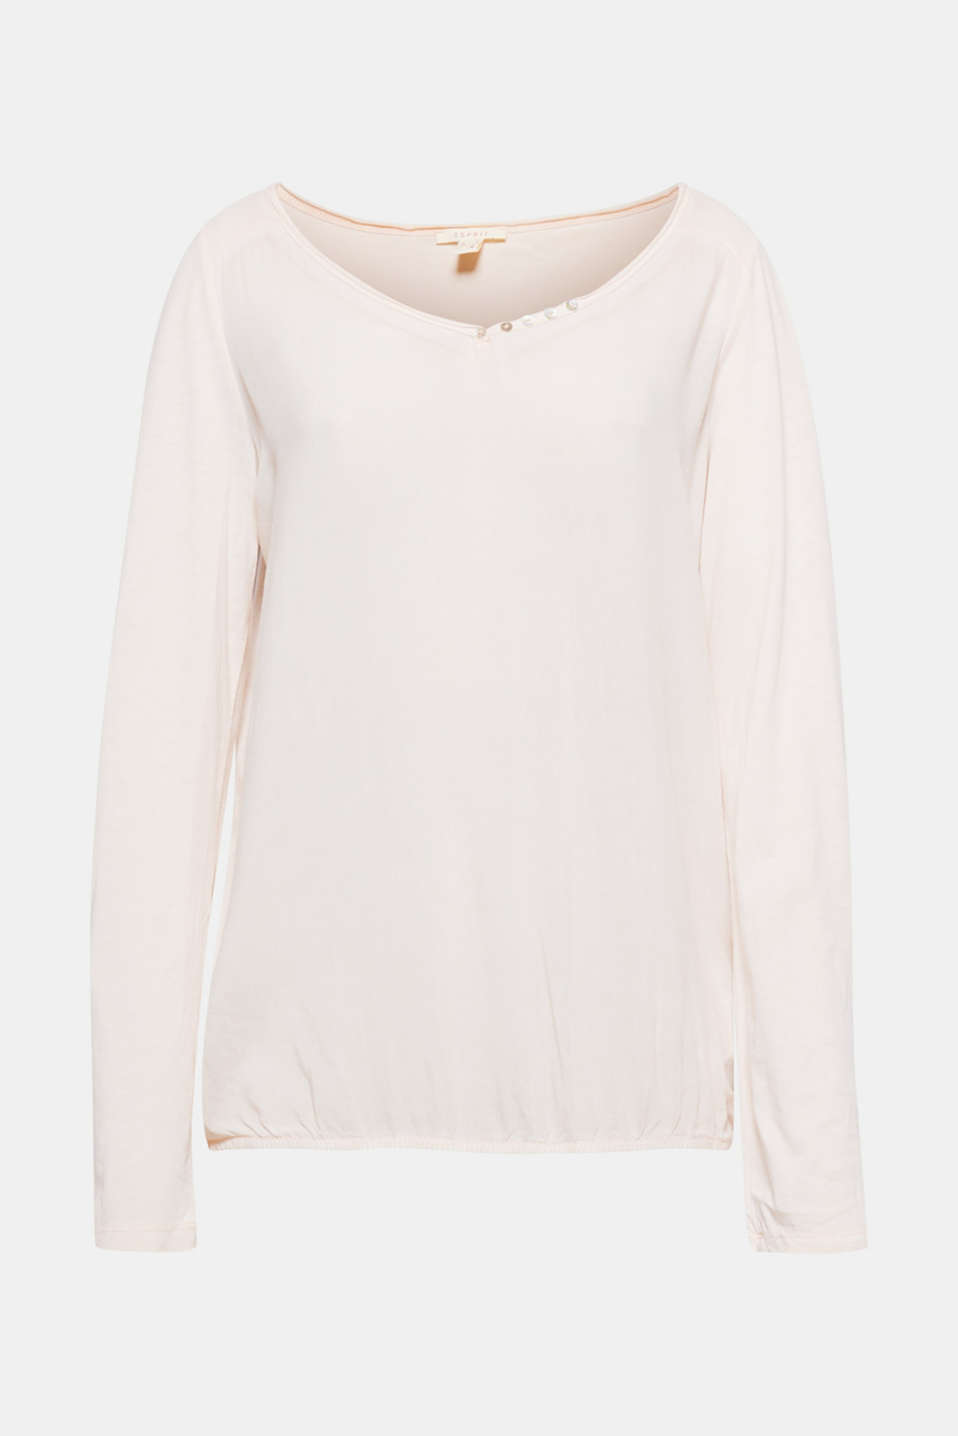 The trendy garment wash, the fashionable material mix and attractive details make this long sleeve top a must-have!